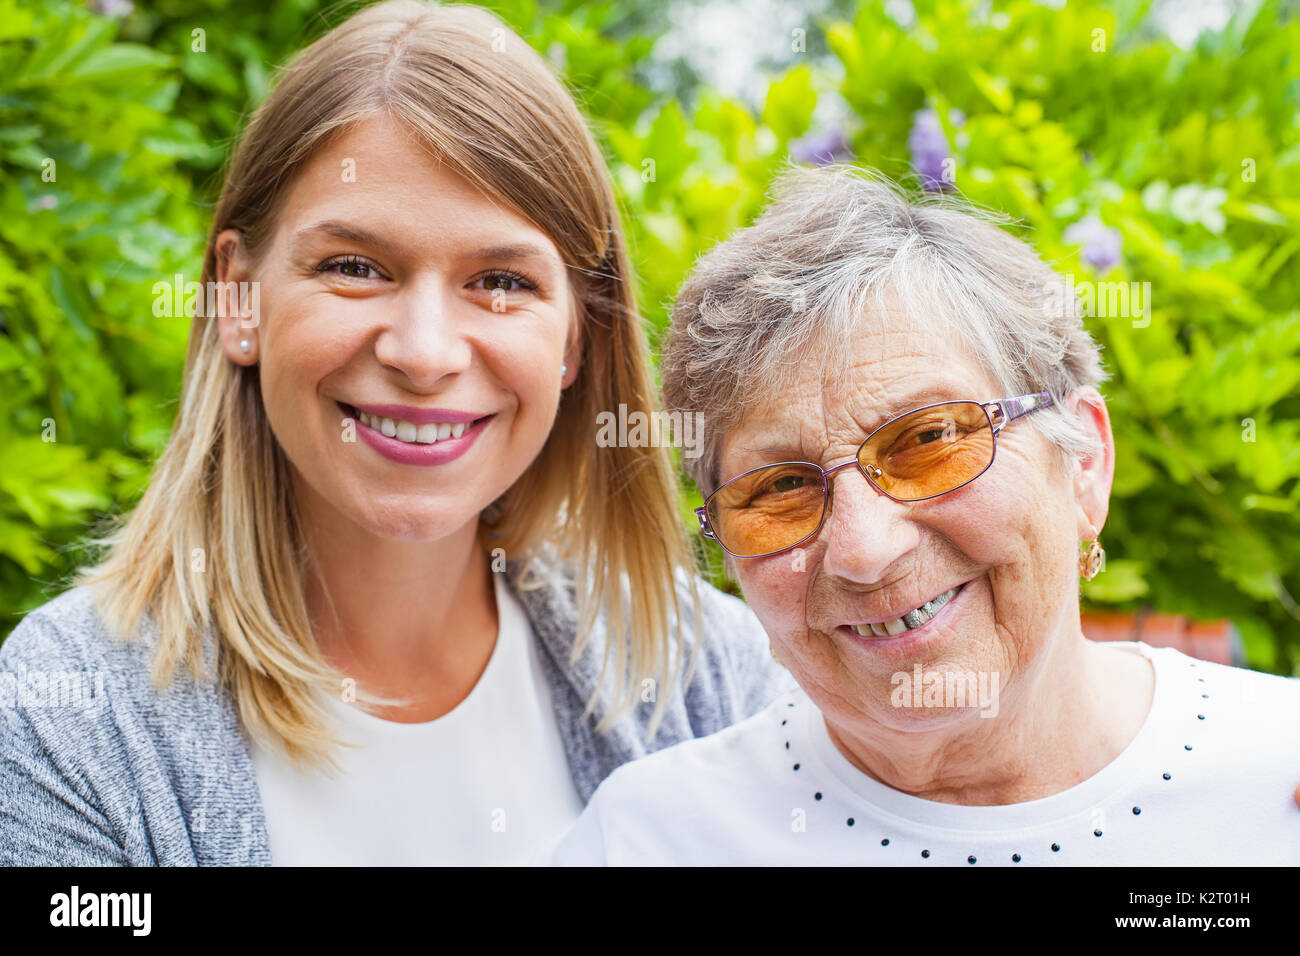 Portrait of elderly woman with damaged dental bridge smiling at the camera with her caretaker outdoor - Stock Image